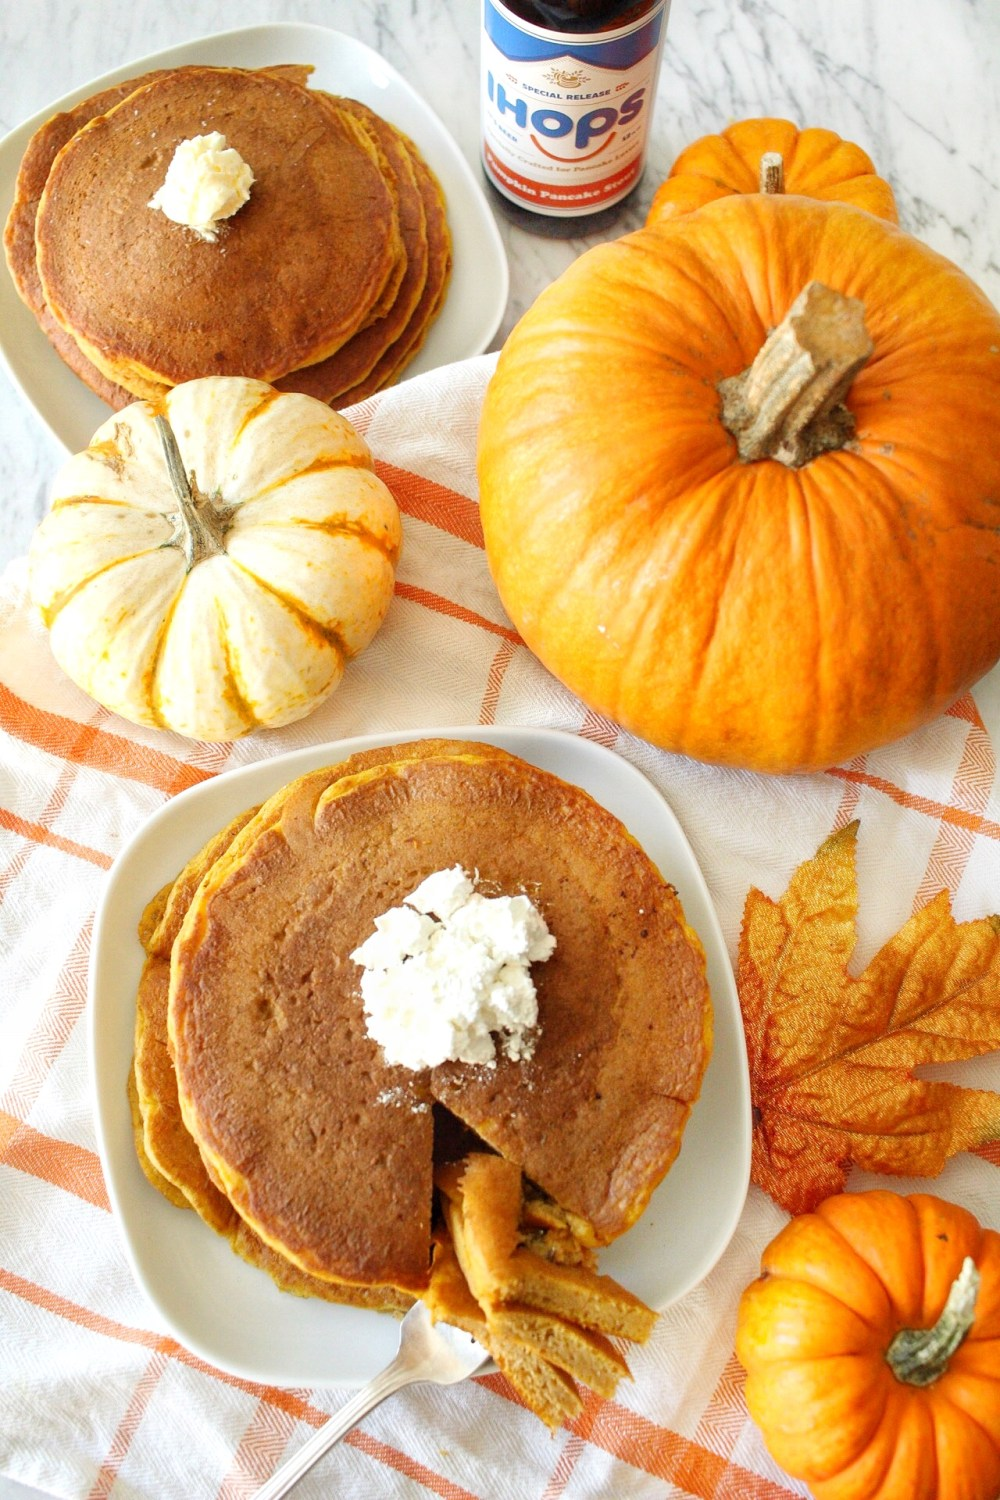 Pumpkin Pancakes at IHOP